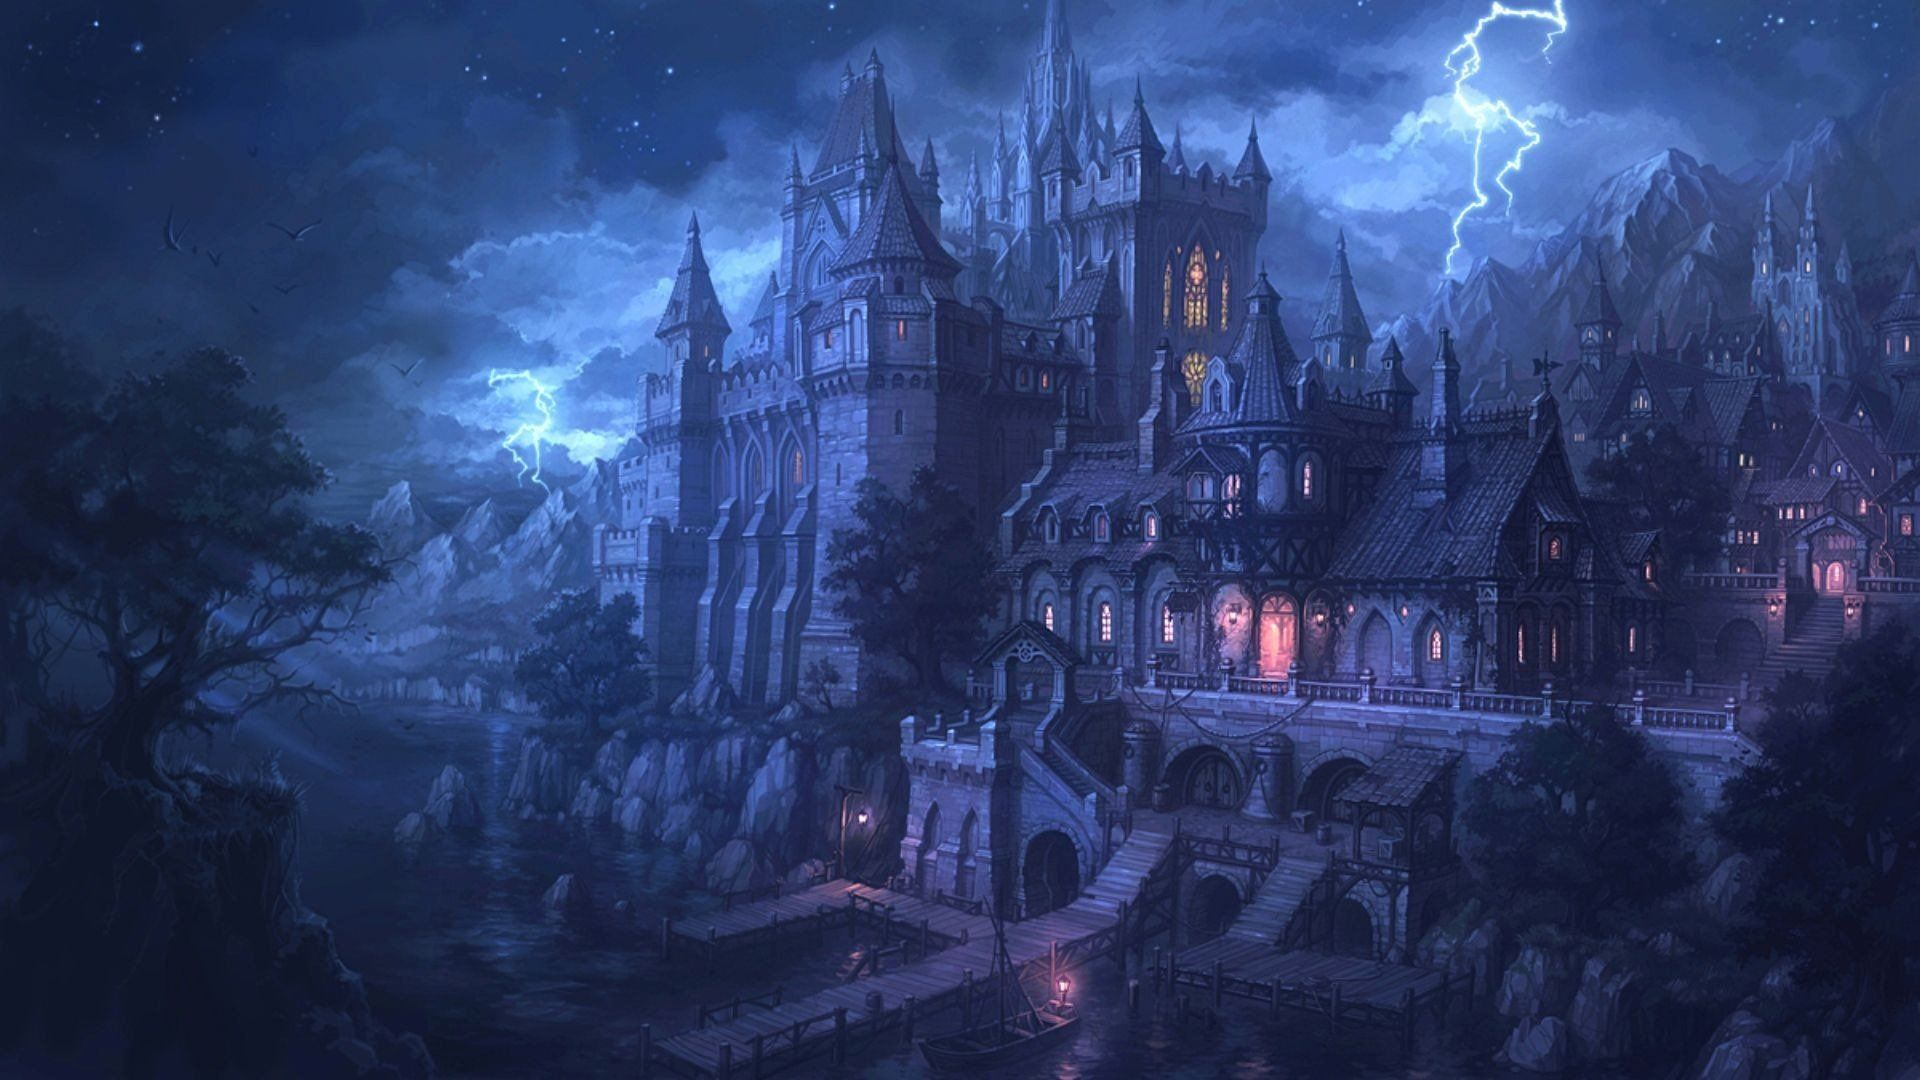 Fantasy Wallpapers Hd Wallpapers Backgrounds Of Your Choice Fantasy Castle Castle Art Fantasy Landscape